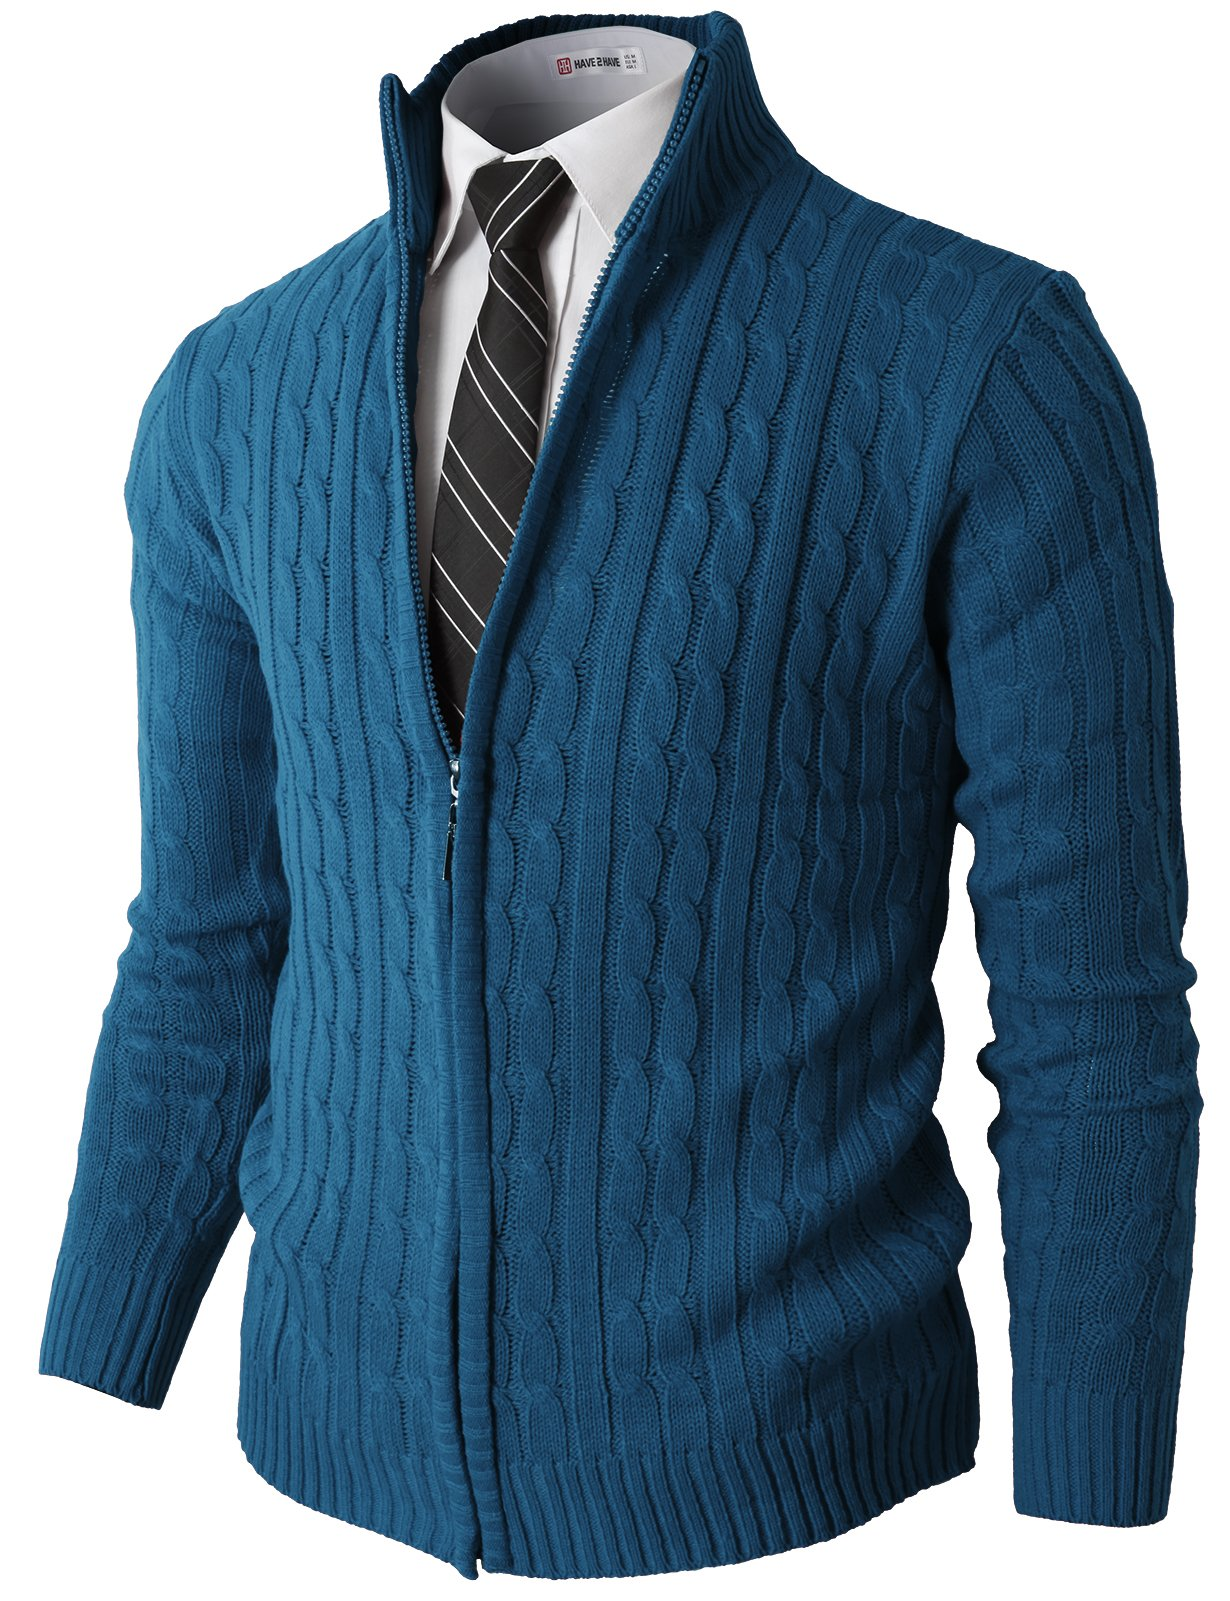 H2H Mens Slim Fit Full-zip Kintted Cardigan Sweaters with Twist Patterned BLUE US M/Asia L (KMOCAL032)